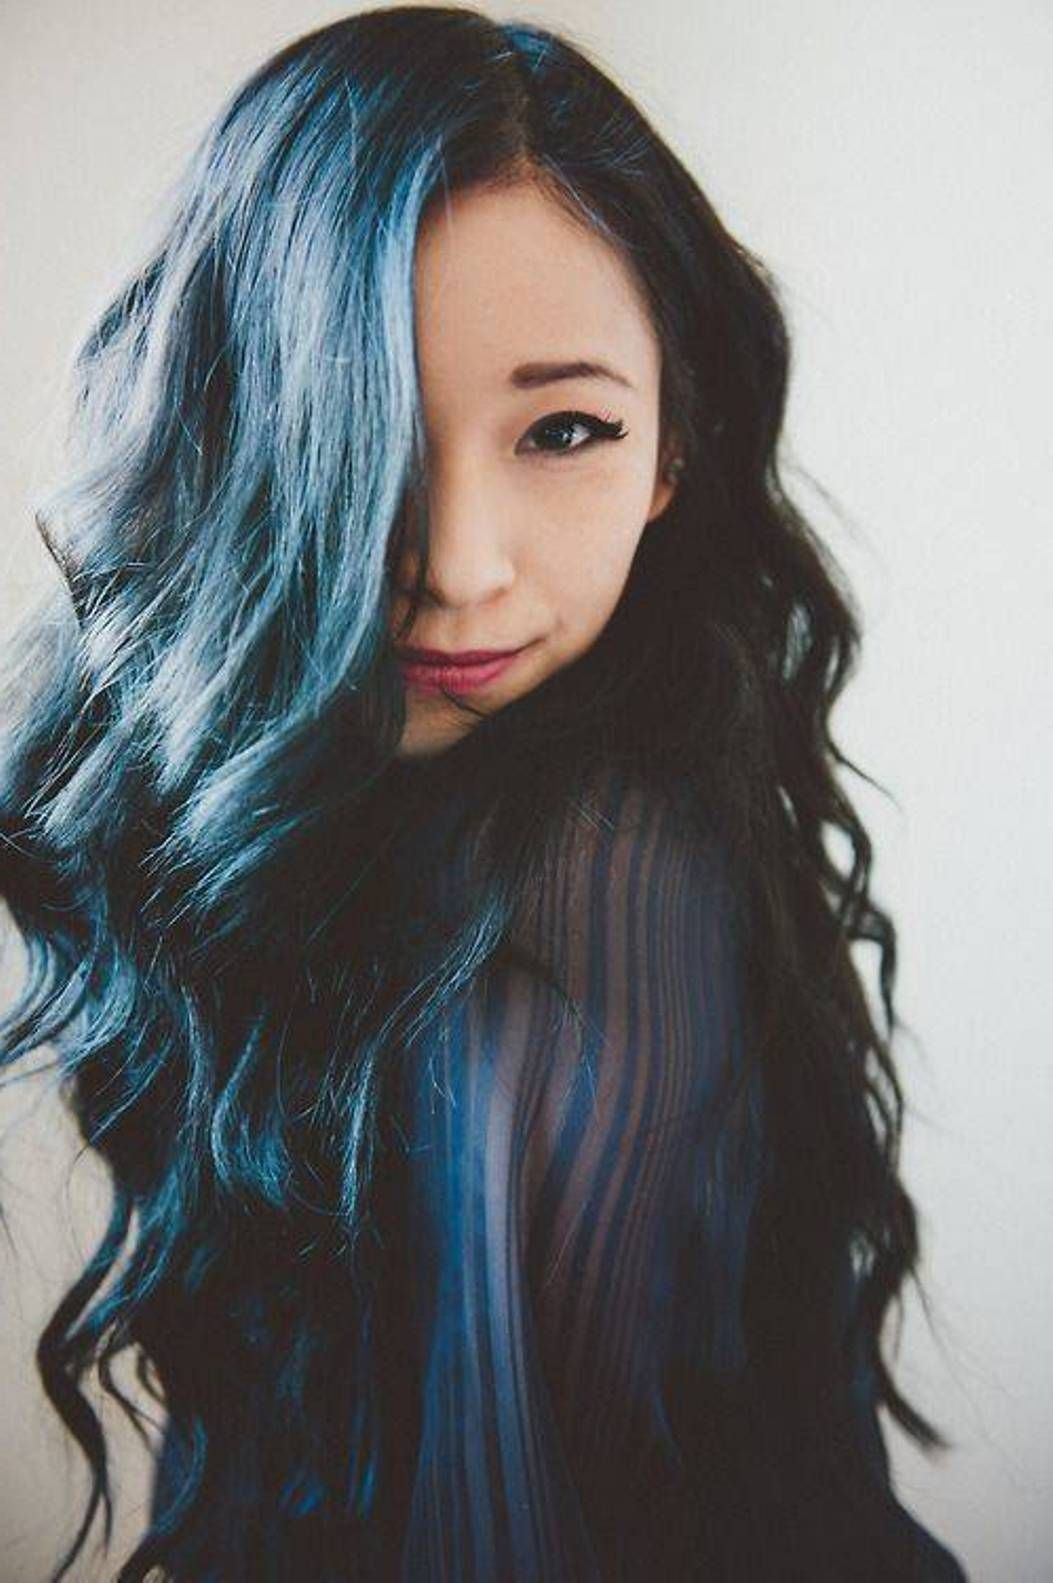 Asian girl blue black hair dye  Hair  Pinterest  Blue black hair